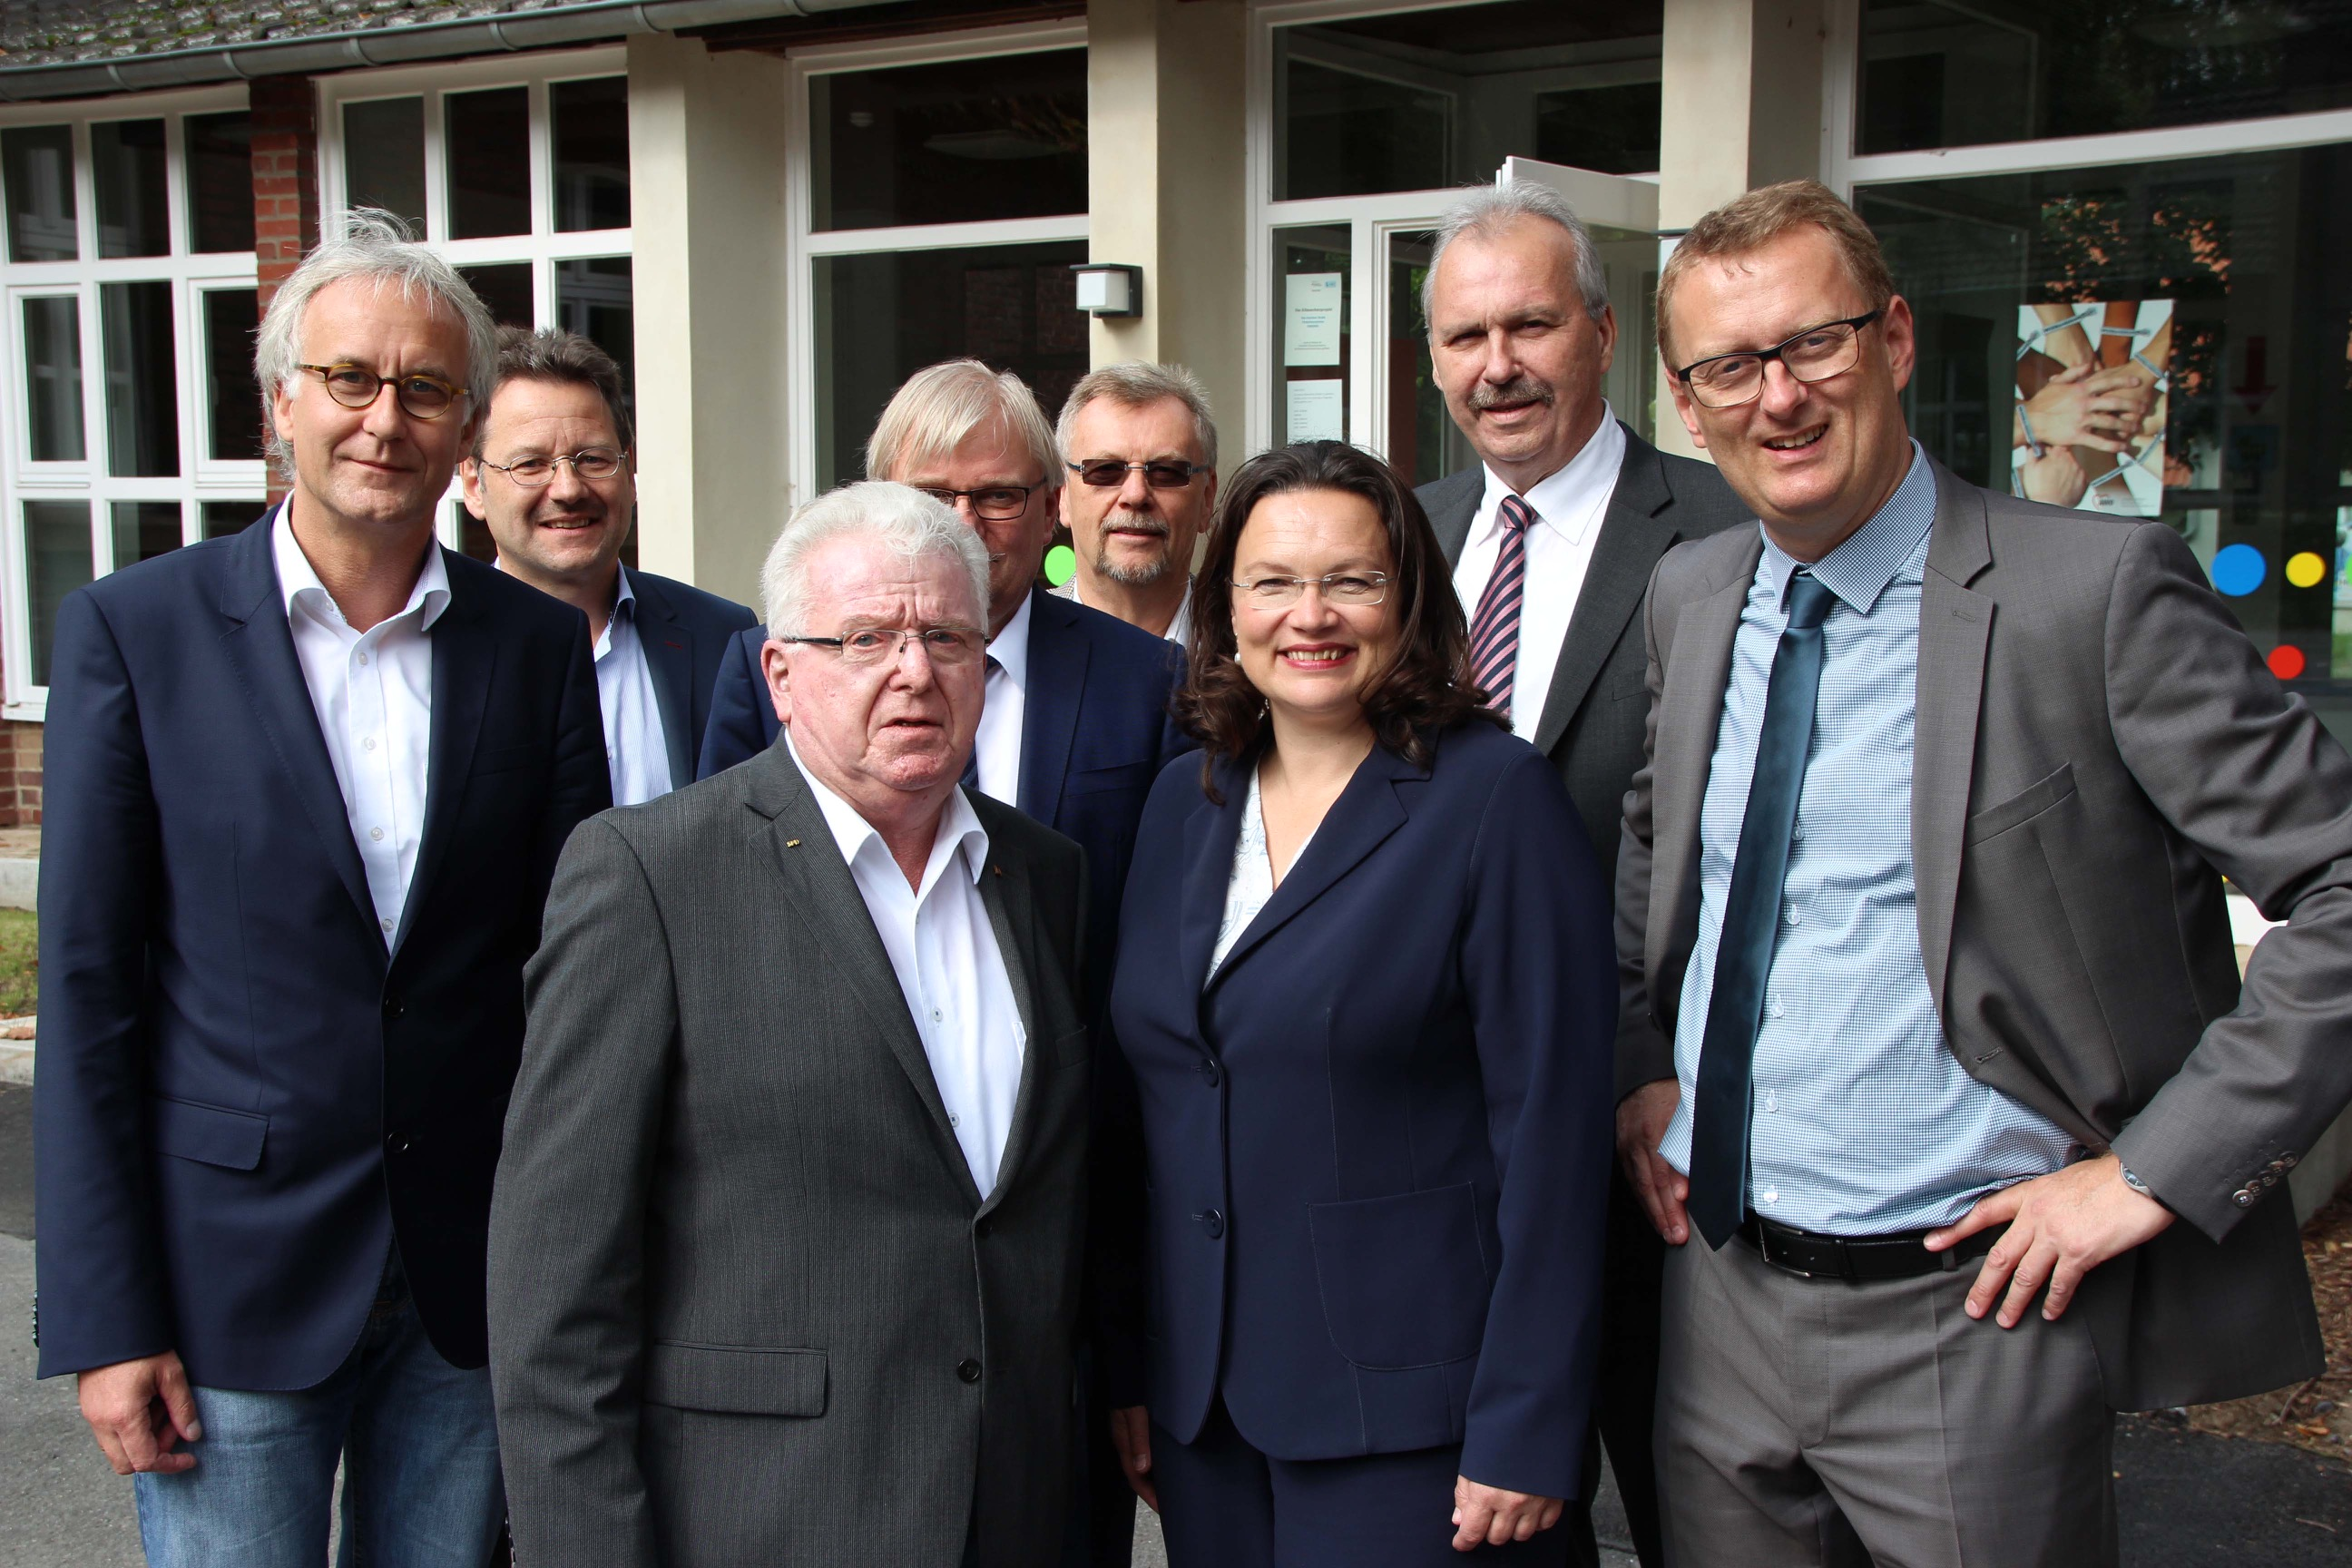 dasdies service gmbh fachgespr ch mit bundesarbeitsministerin andrea nahles. Black Bedroom Furniture Sets. Home Design Ideas